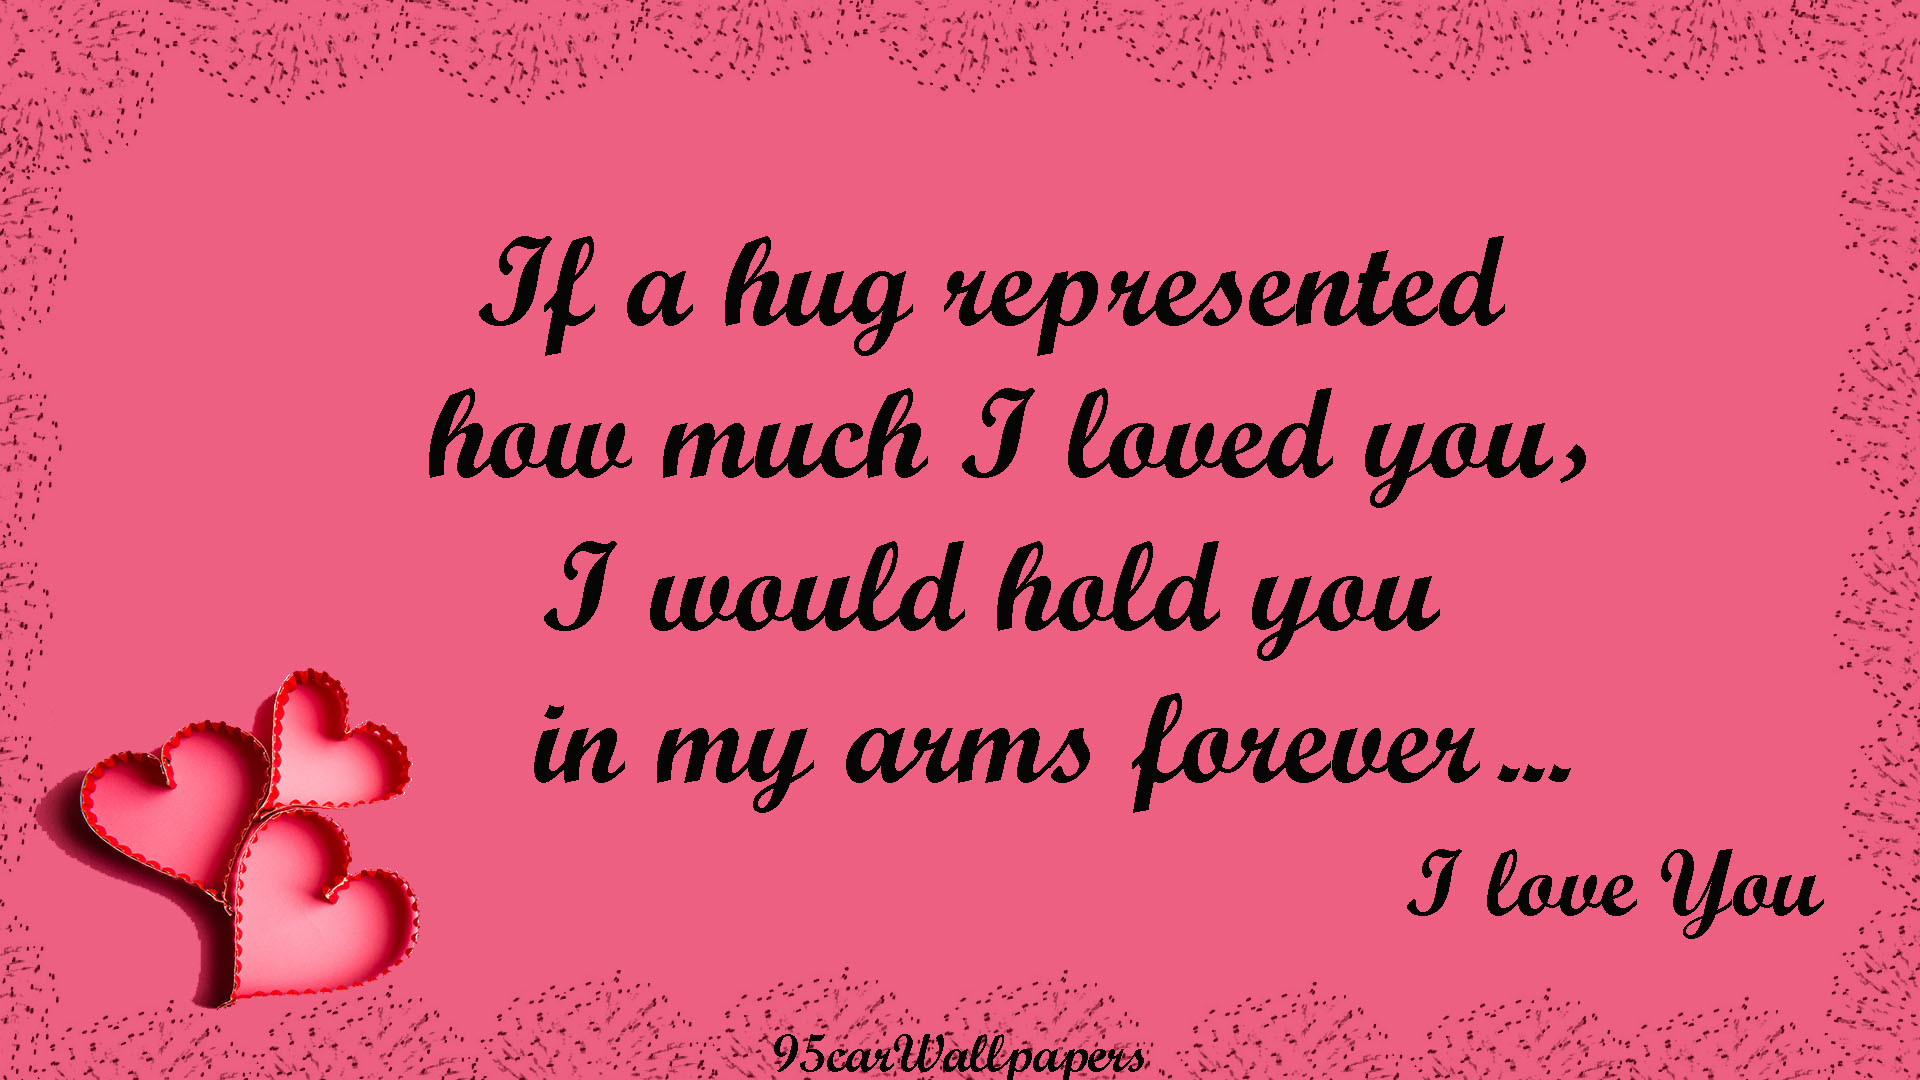 Love Quotes With Images Free Downloads My Site